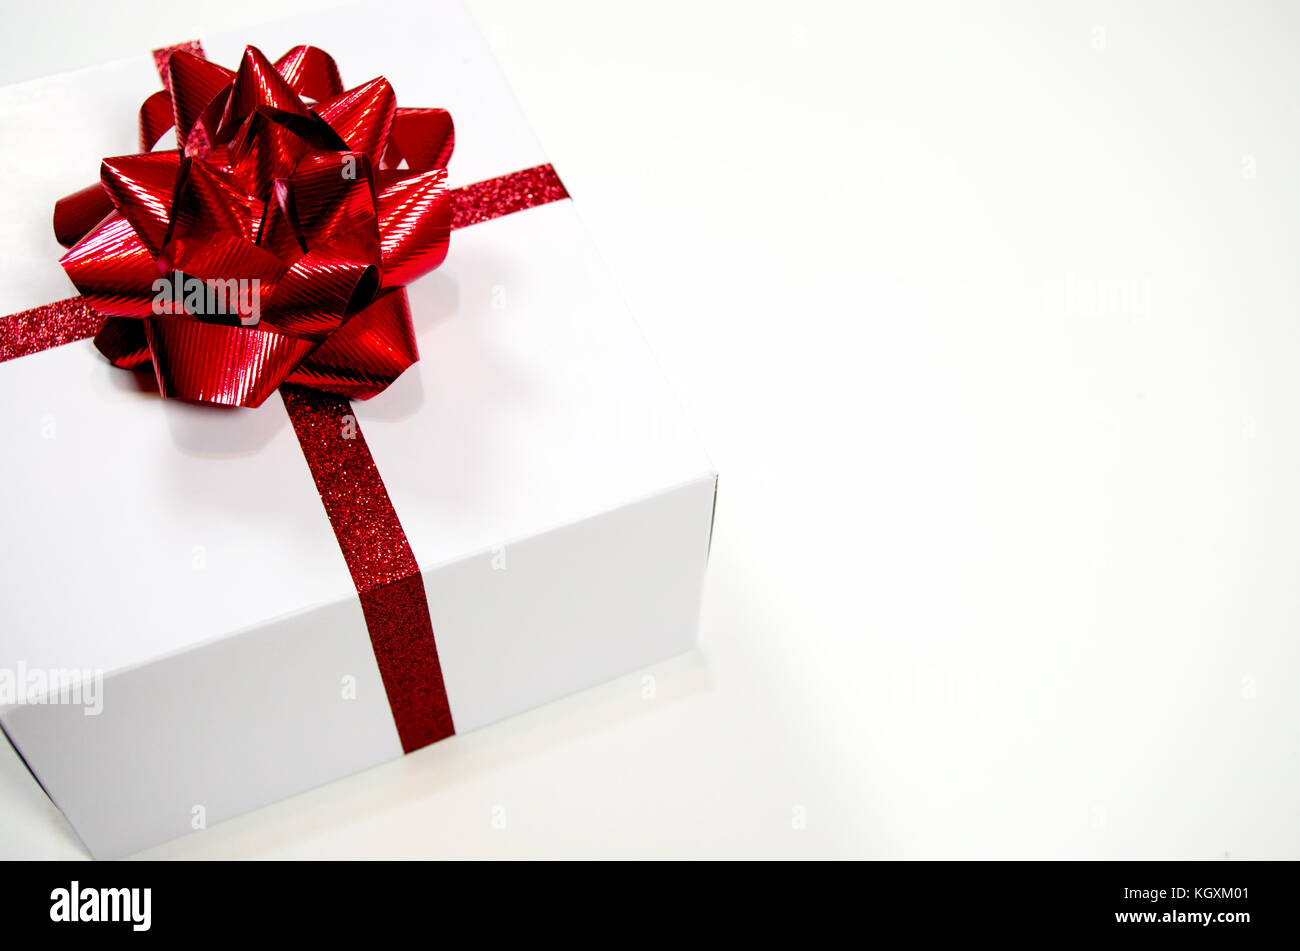 Single Christmas present with red bow on a white background - Stock Image